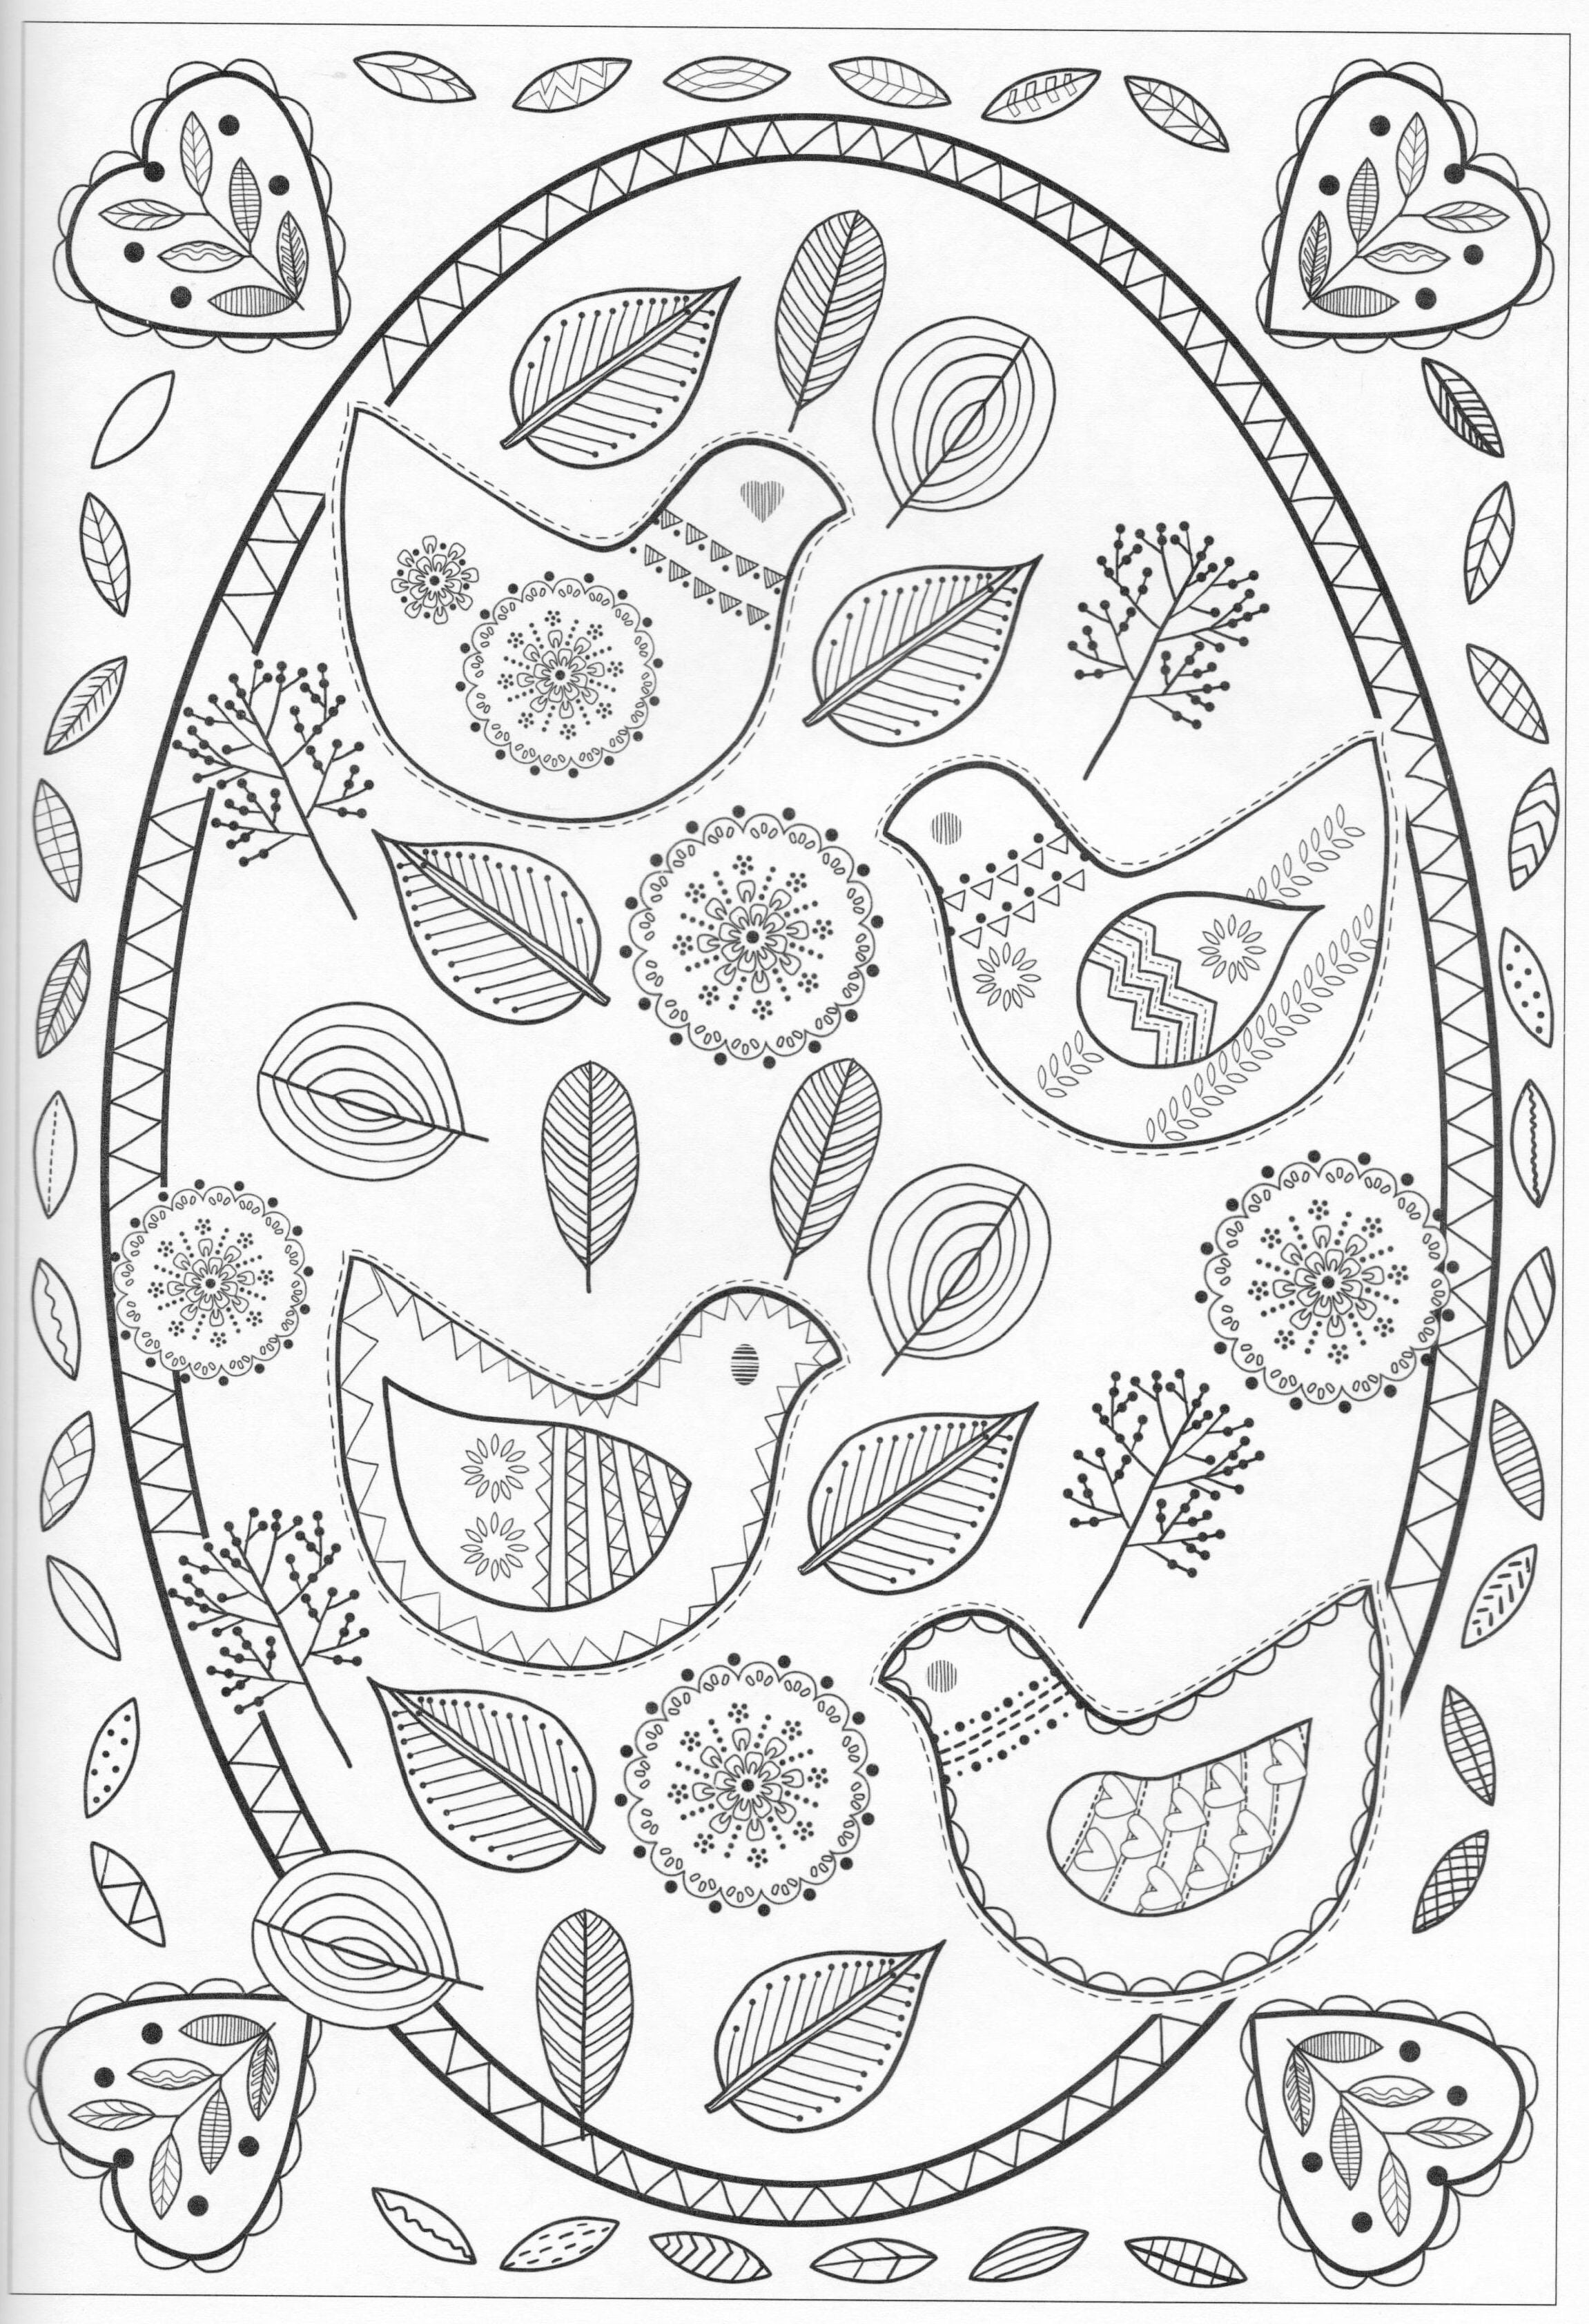 Tattoo Coloring Pages Lovely 149 Dibujos Para Imprimir Colorear O